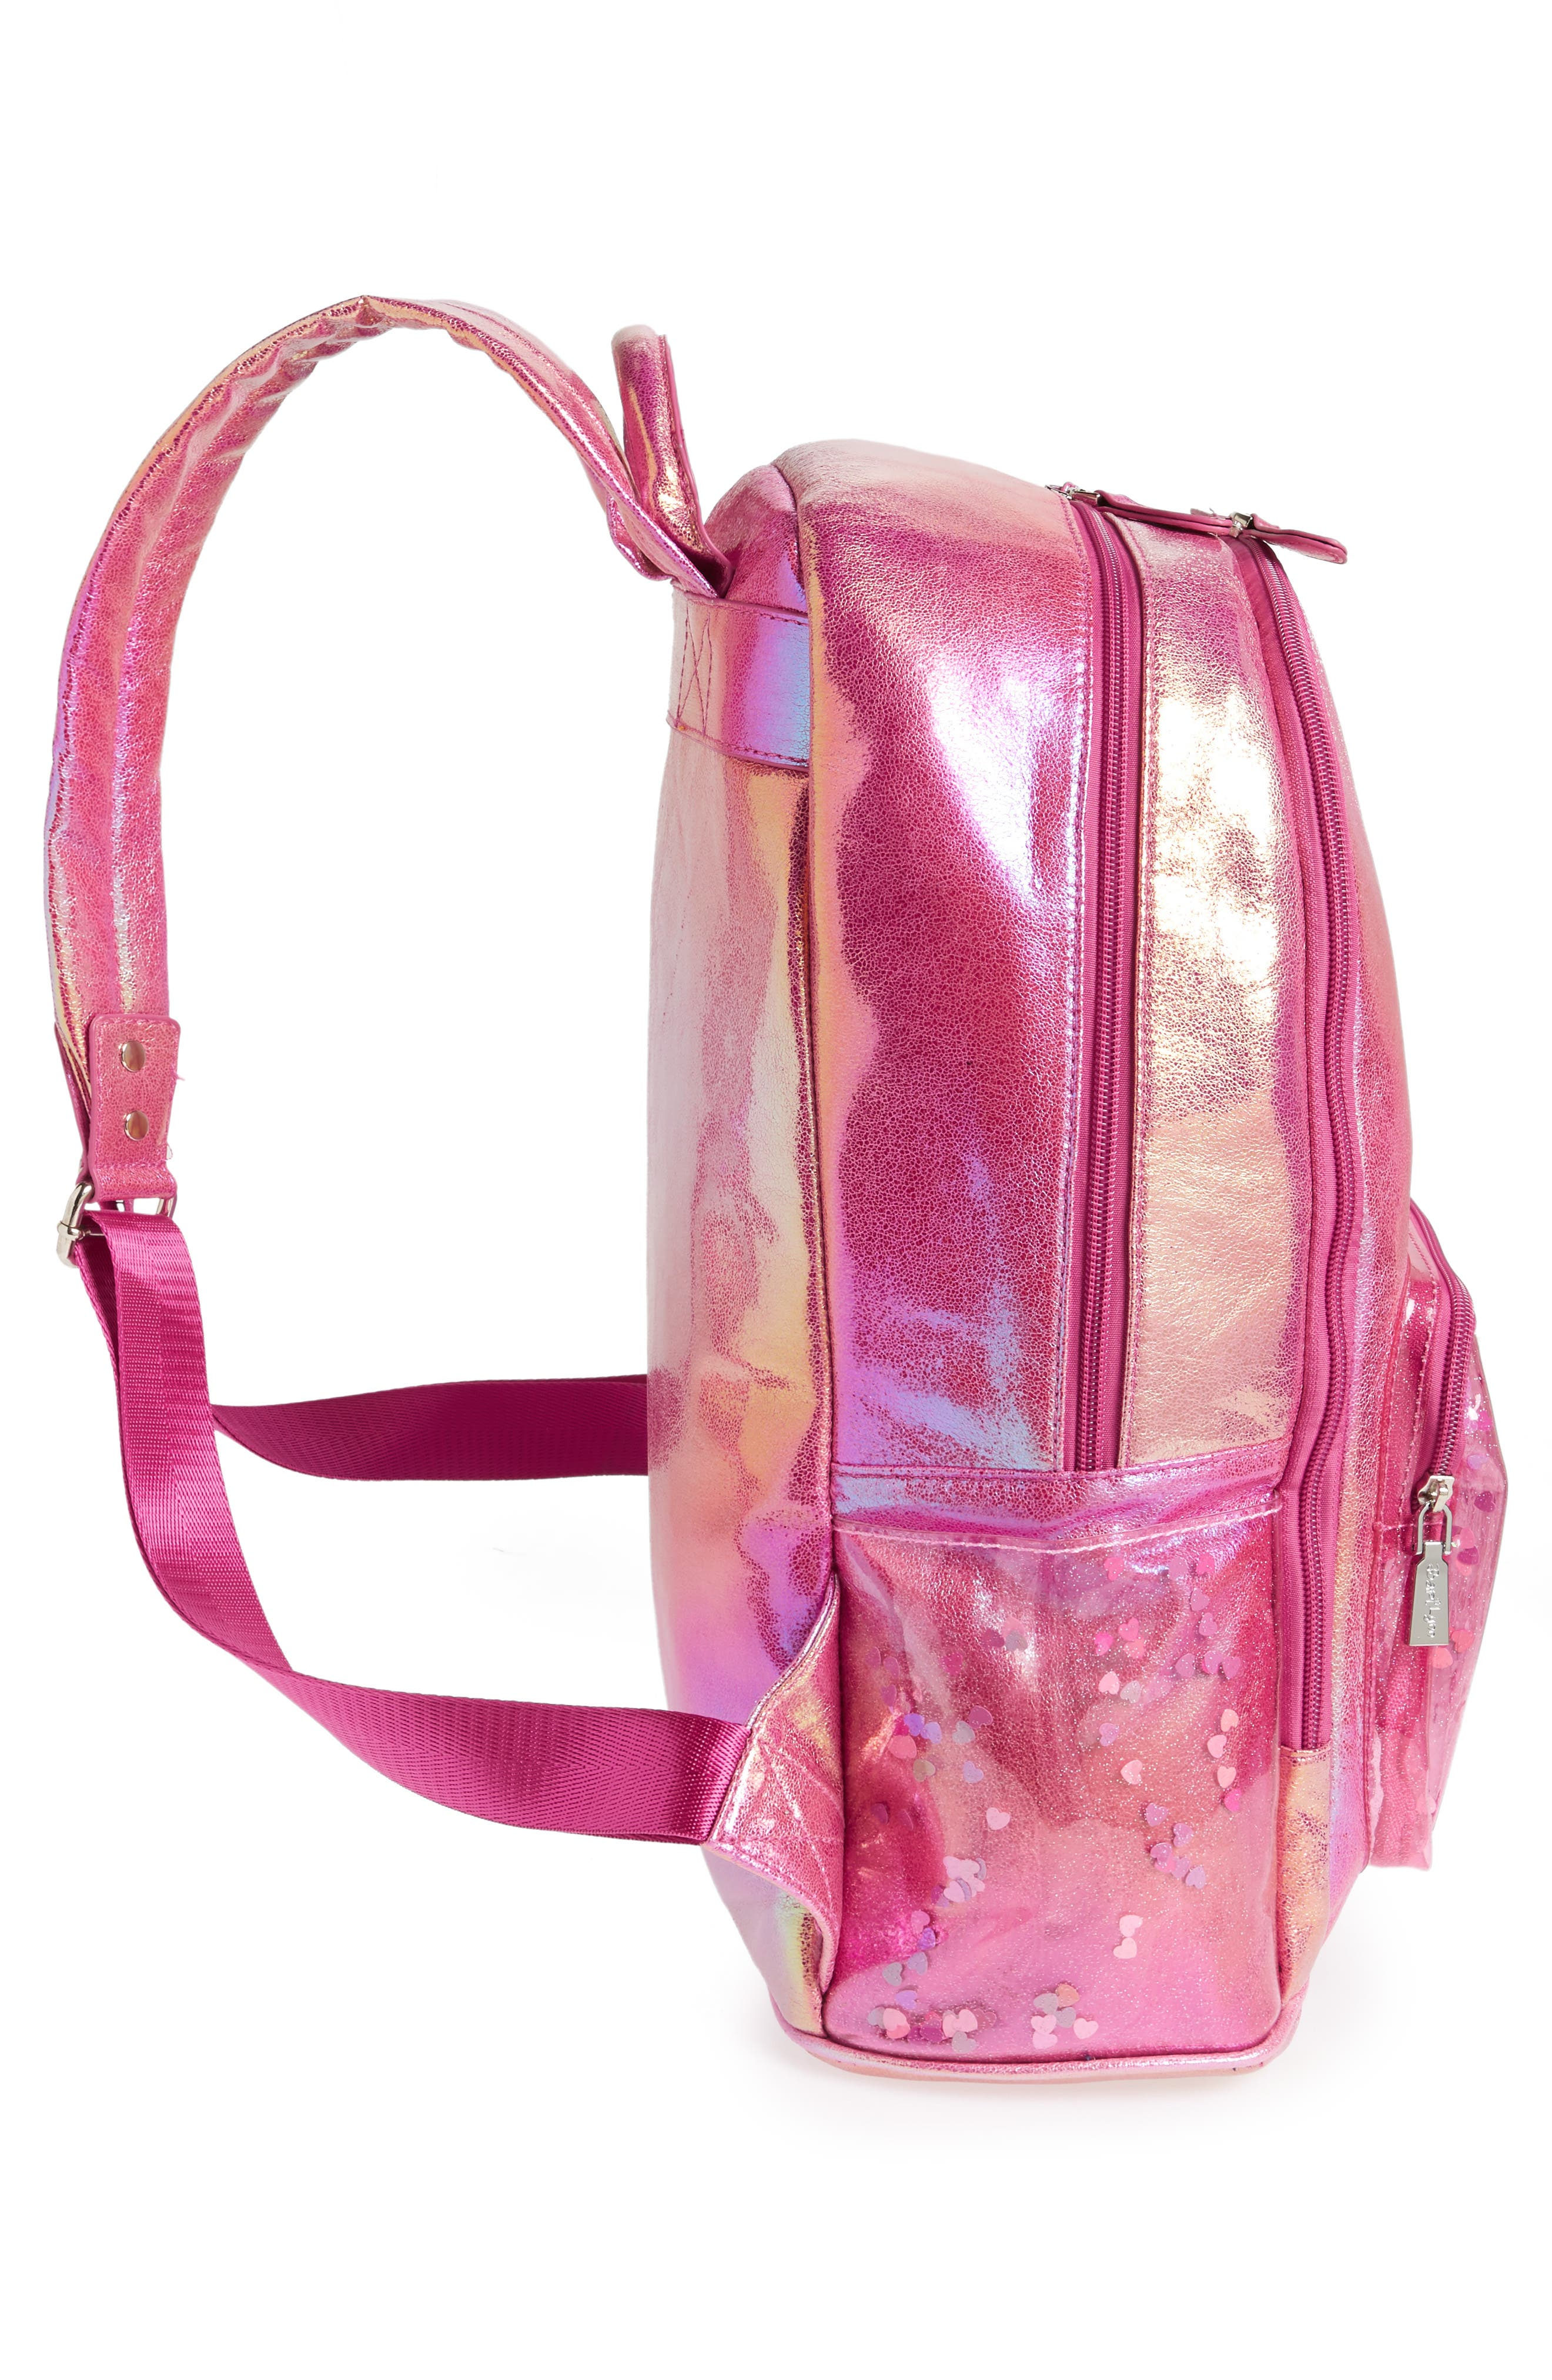 Heart Confetti Holographic Backpack,                             Alternate thumbnail 4, color,                             650